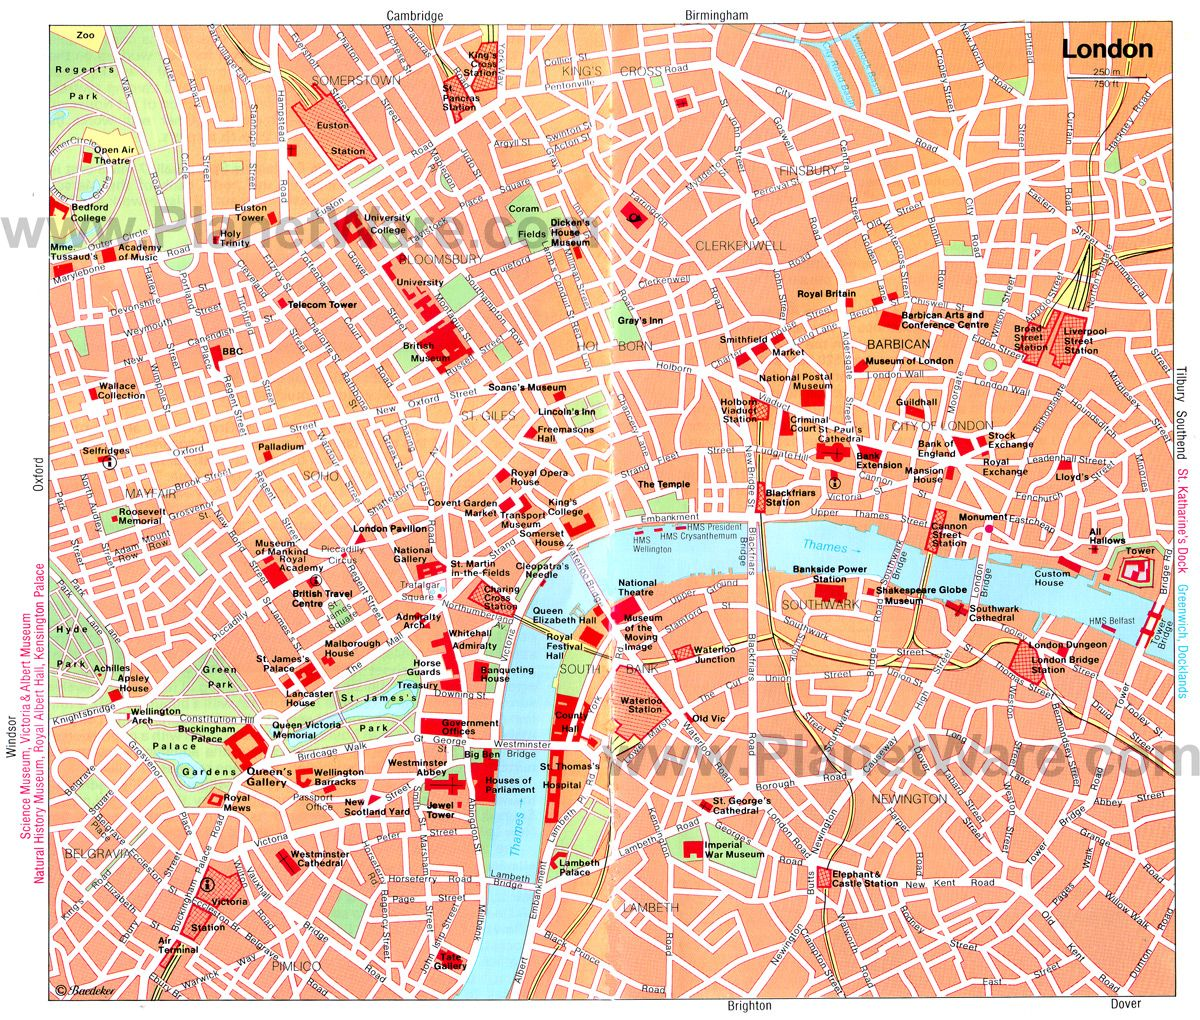 map of london city london map england europe travel map tourist where how and